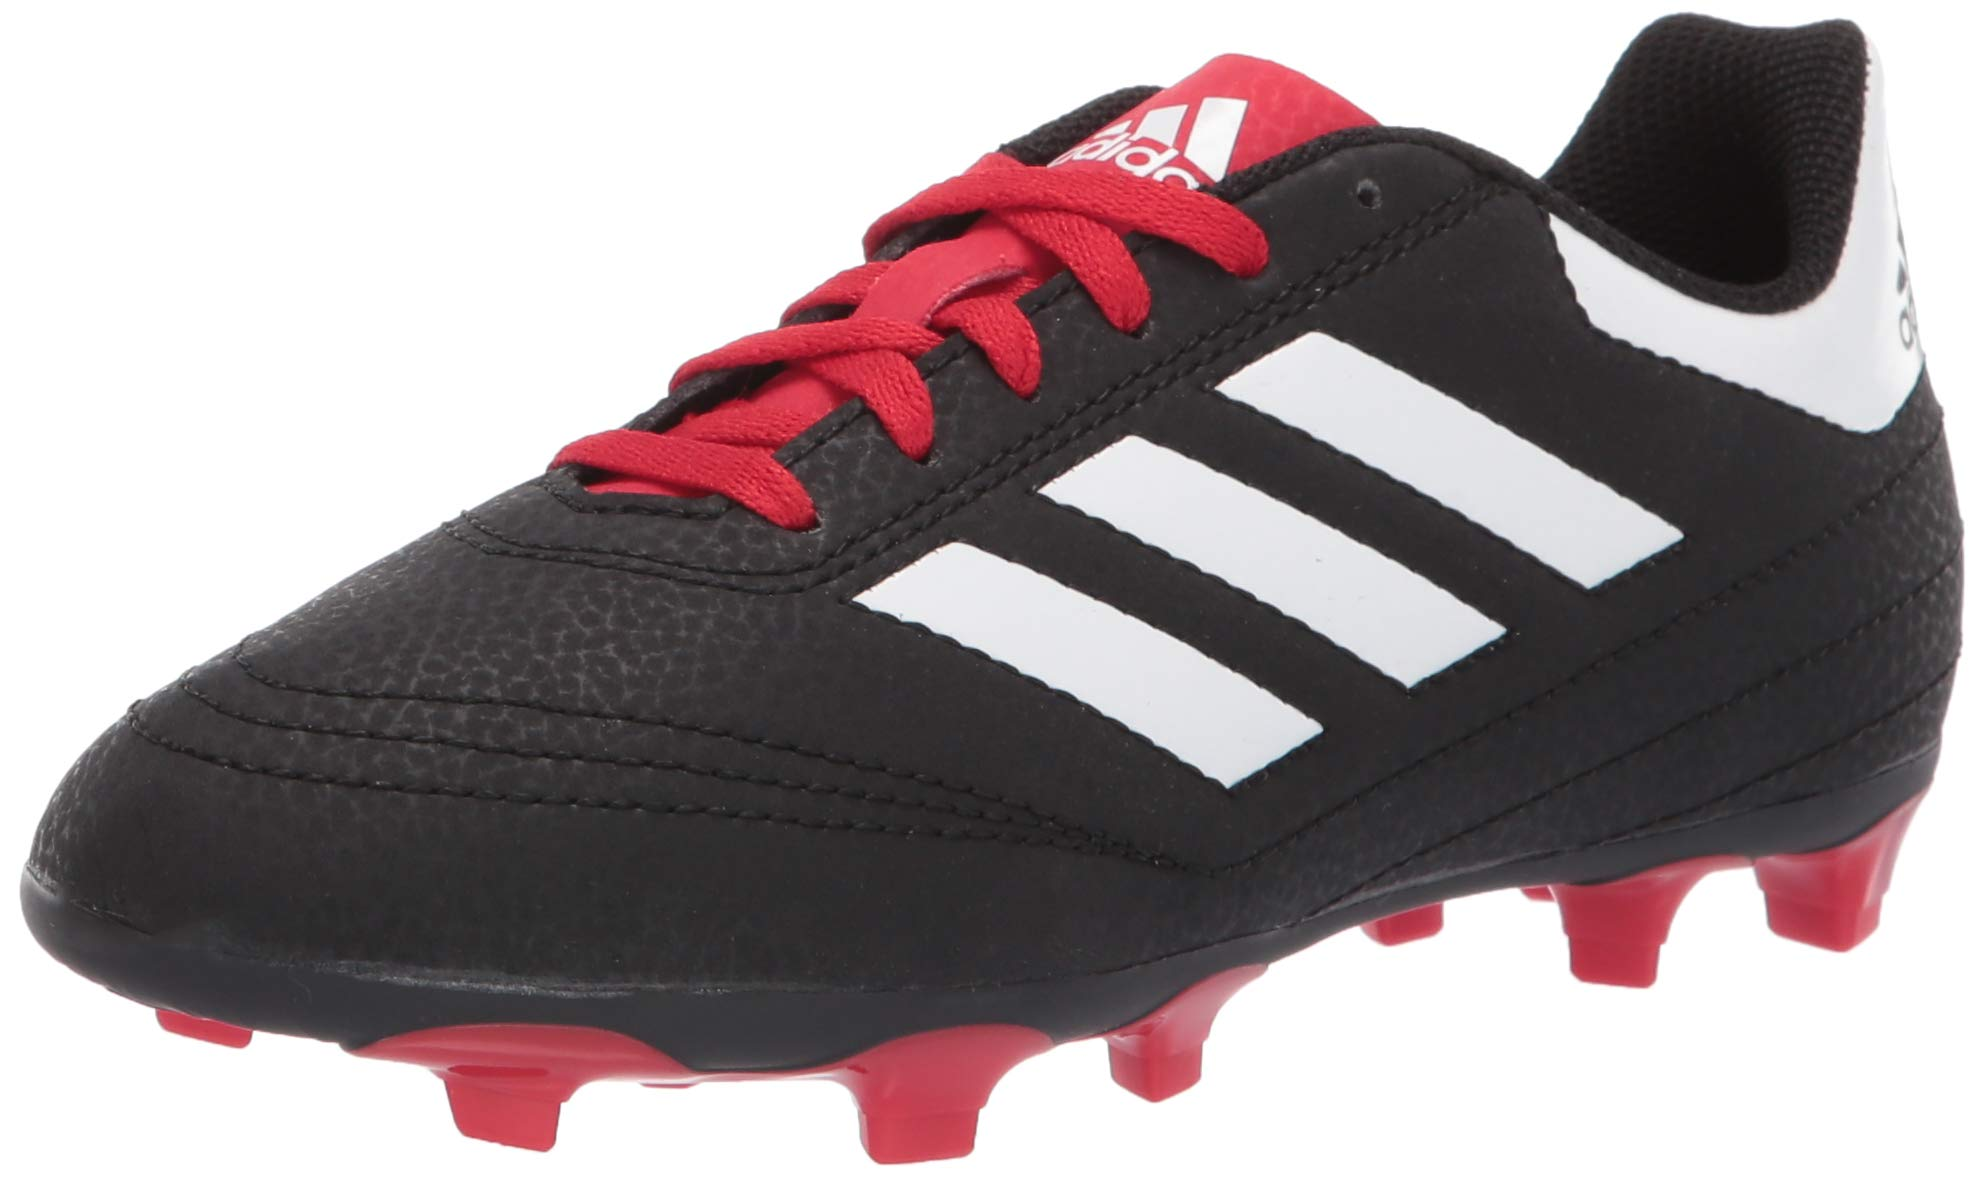 adidas Unisex Goletto VI Firm Ground, Black/White/Scarlet, 10.5K M US Little Kid